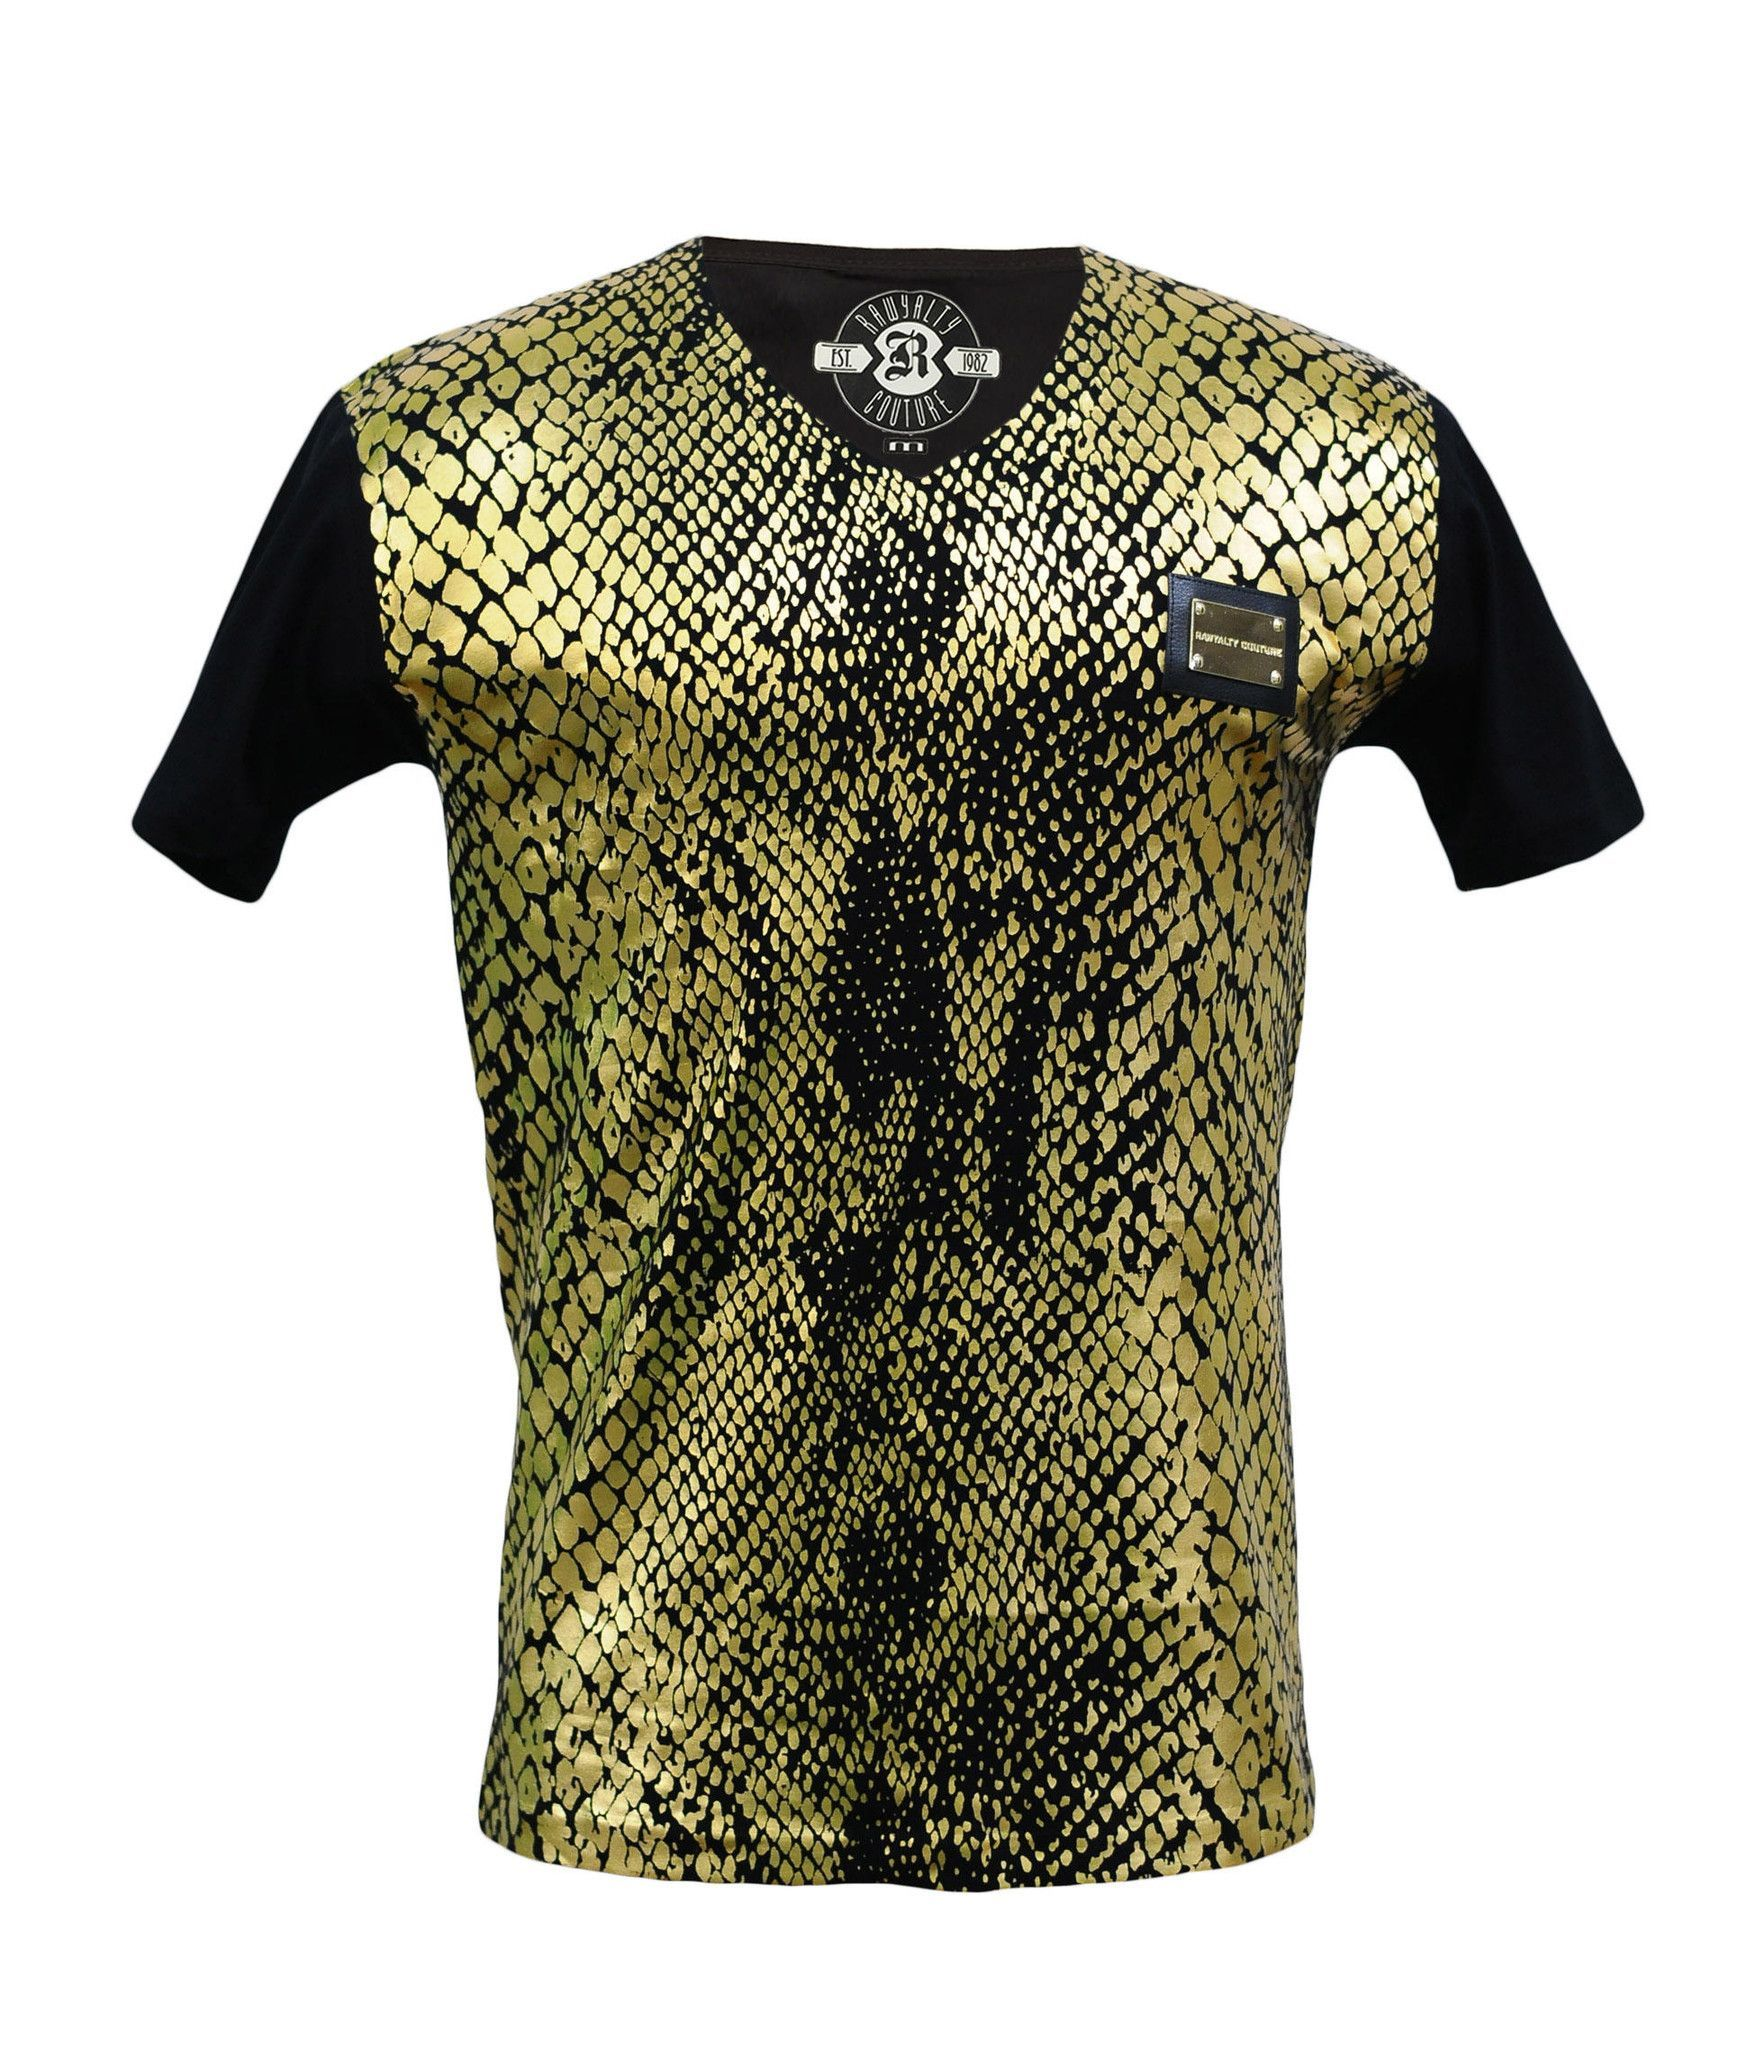 Black t shirt with gold design - Rawyalty Couture Men S Gold Raw T Shirt Black